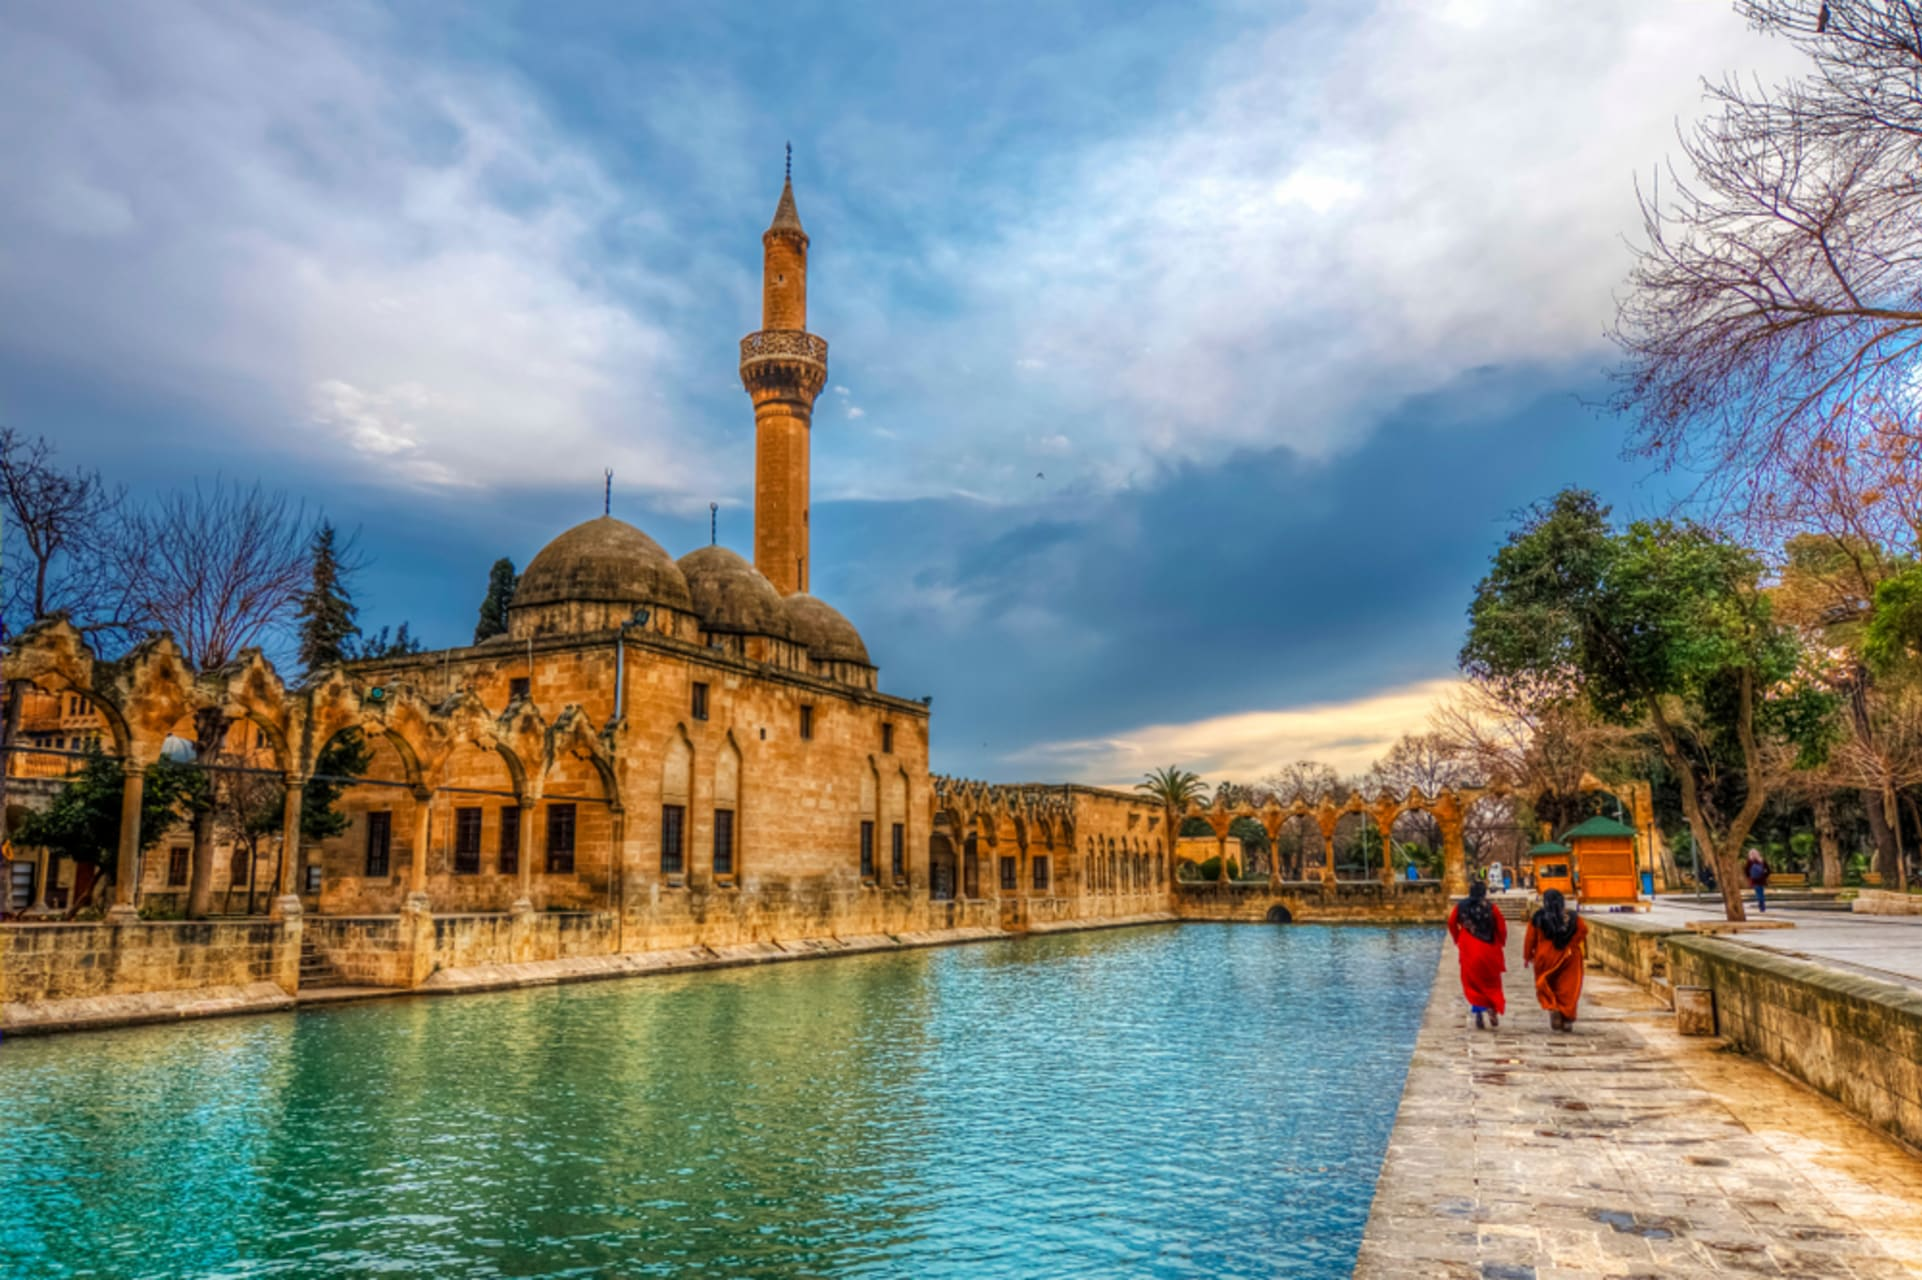 Urfa - Foot paths of prophet Abraham and the Miracle of the Fish Lake